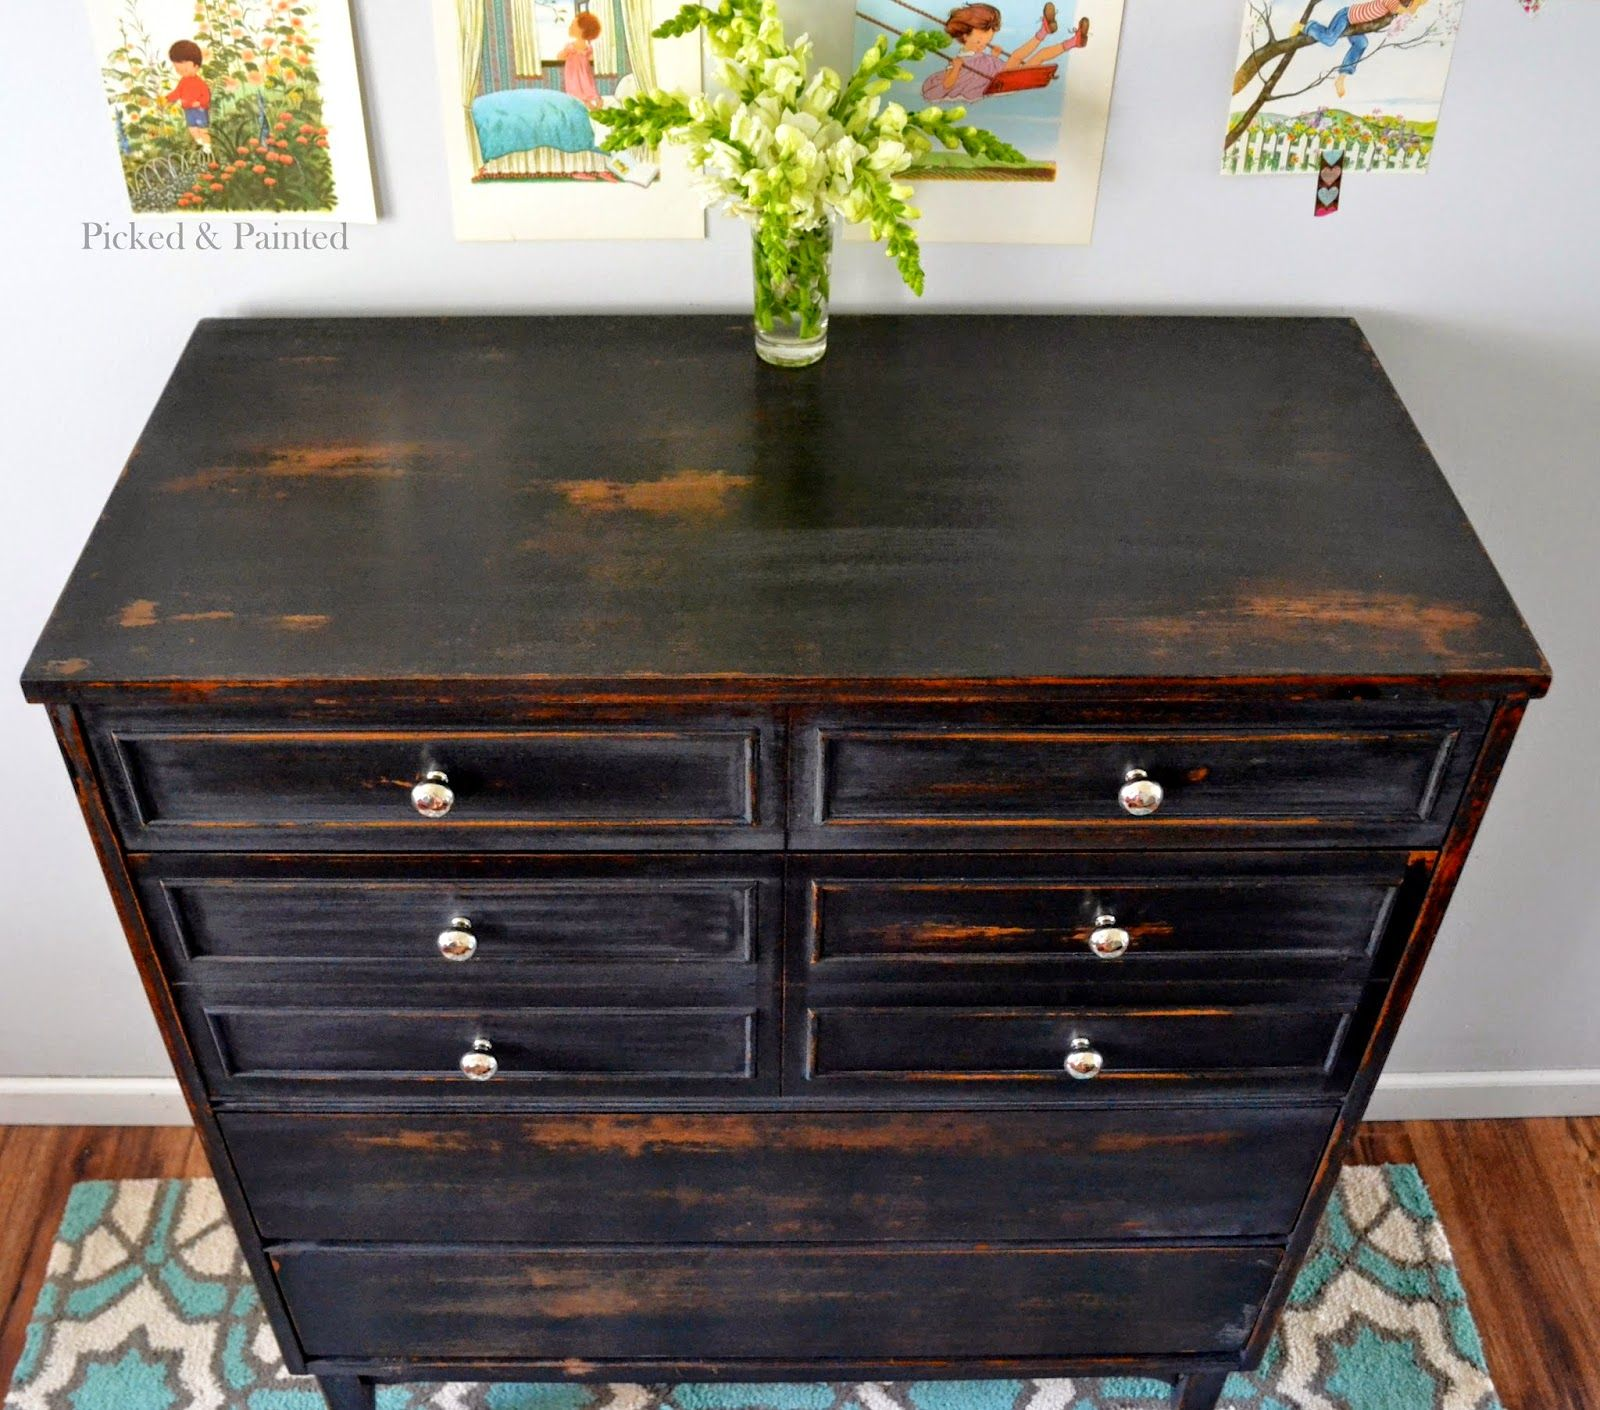 Picked Painted Dresser In Pitch Black Milk Paint Black Distressed Dresser Distressed Dresser Milk Paint [ 1410 x 1600 Pixel ]